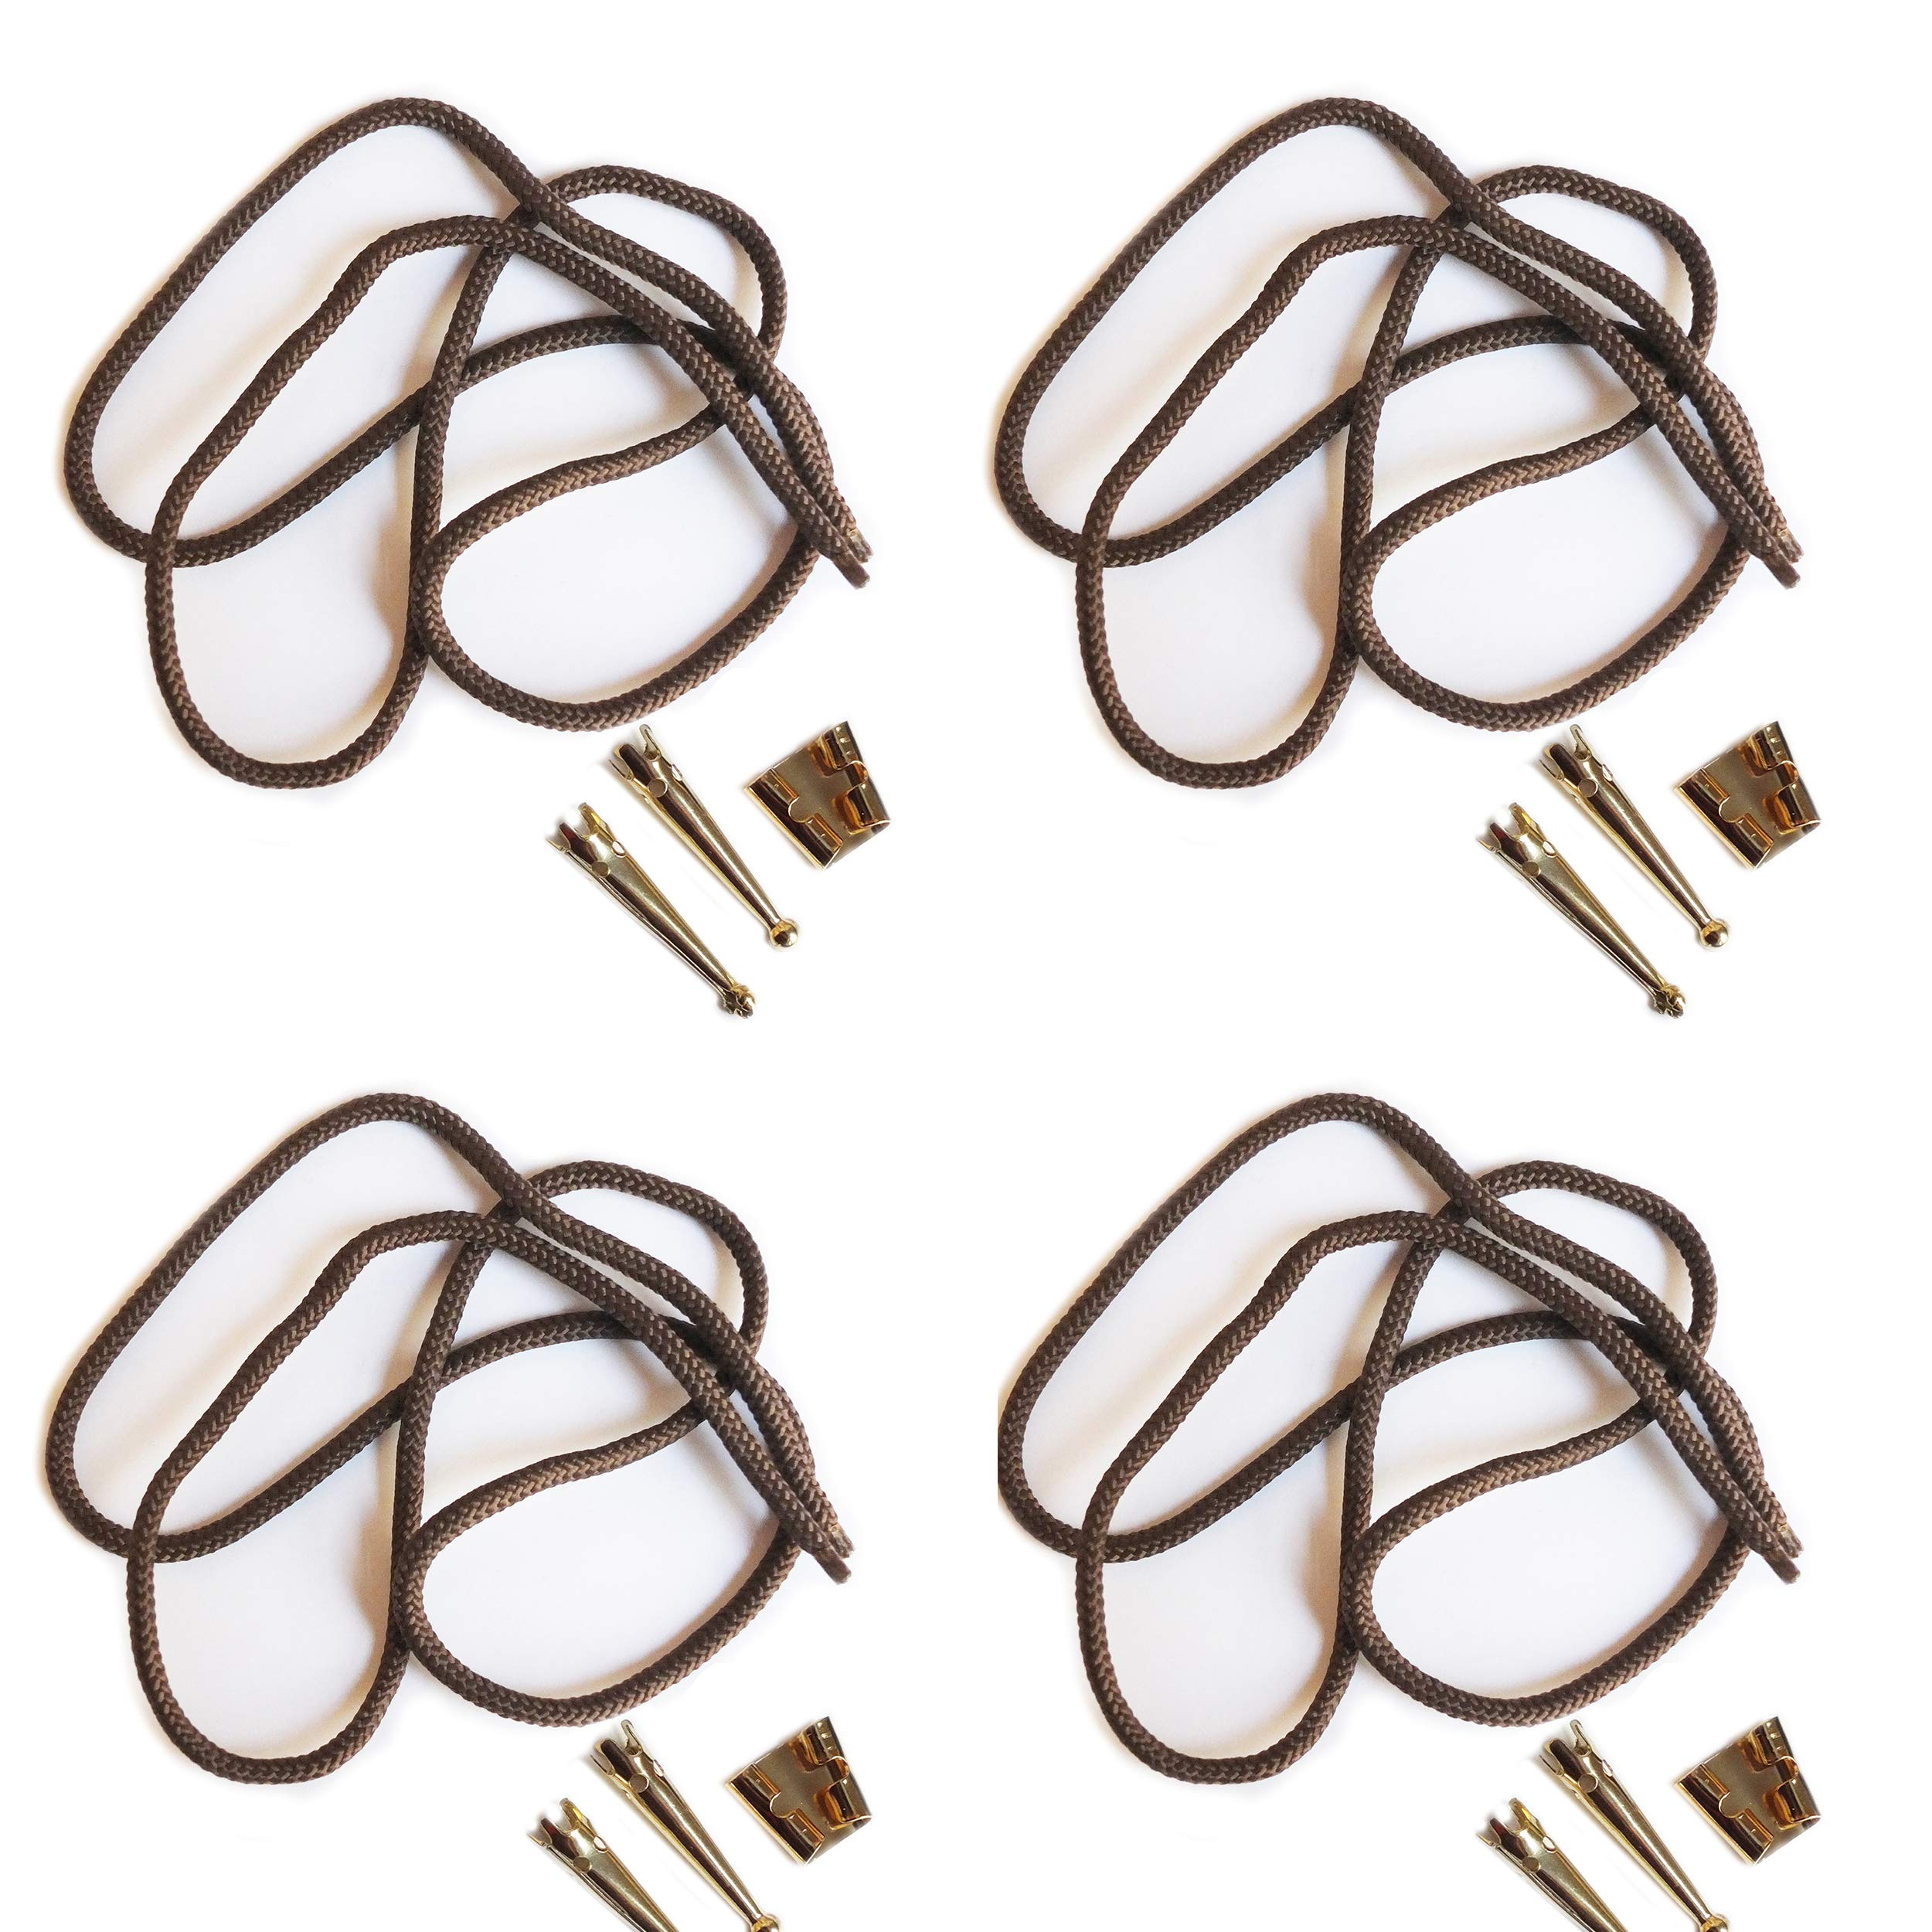 Blank Bolo String Tie Parts Kit Standard Slide Smooth Tips Brown Cord DIY Gold Tone Supplies for 4 Ties by BeadExplosion